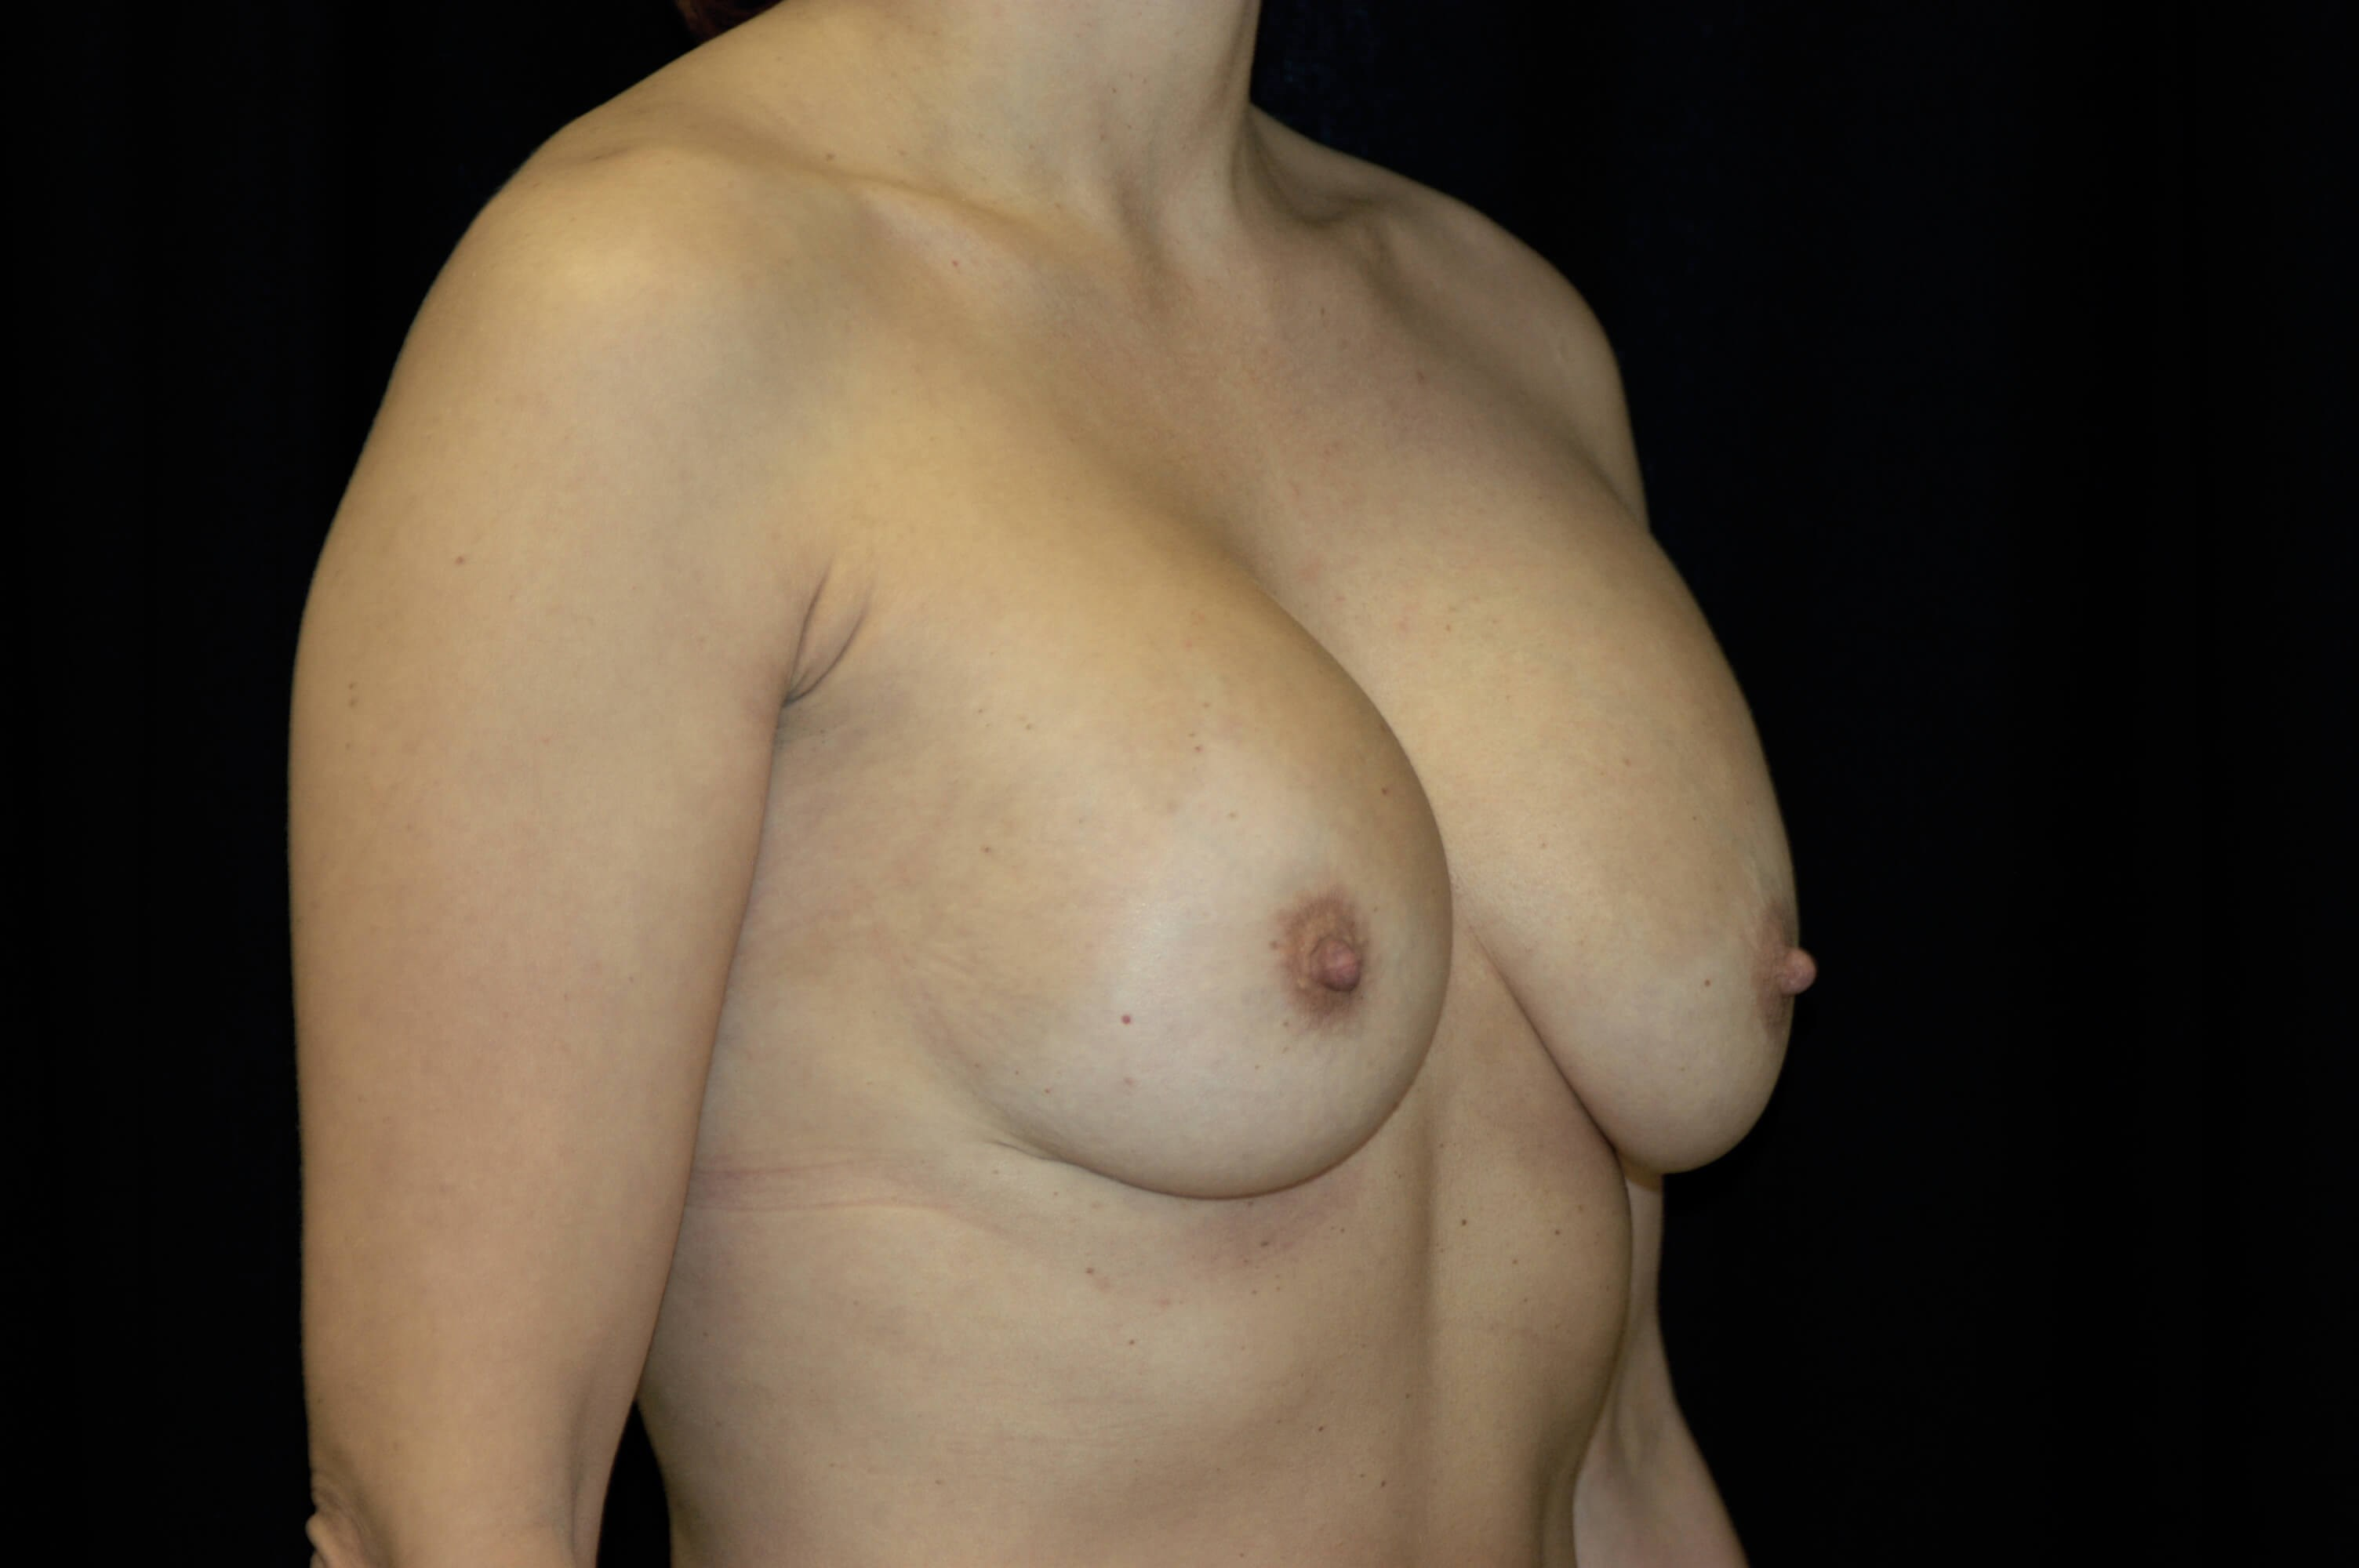 WOMAN IN DALLAS HAS BREAST AUGMENTATION REVISION SURGERY